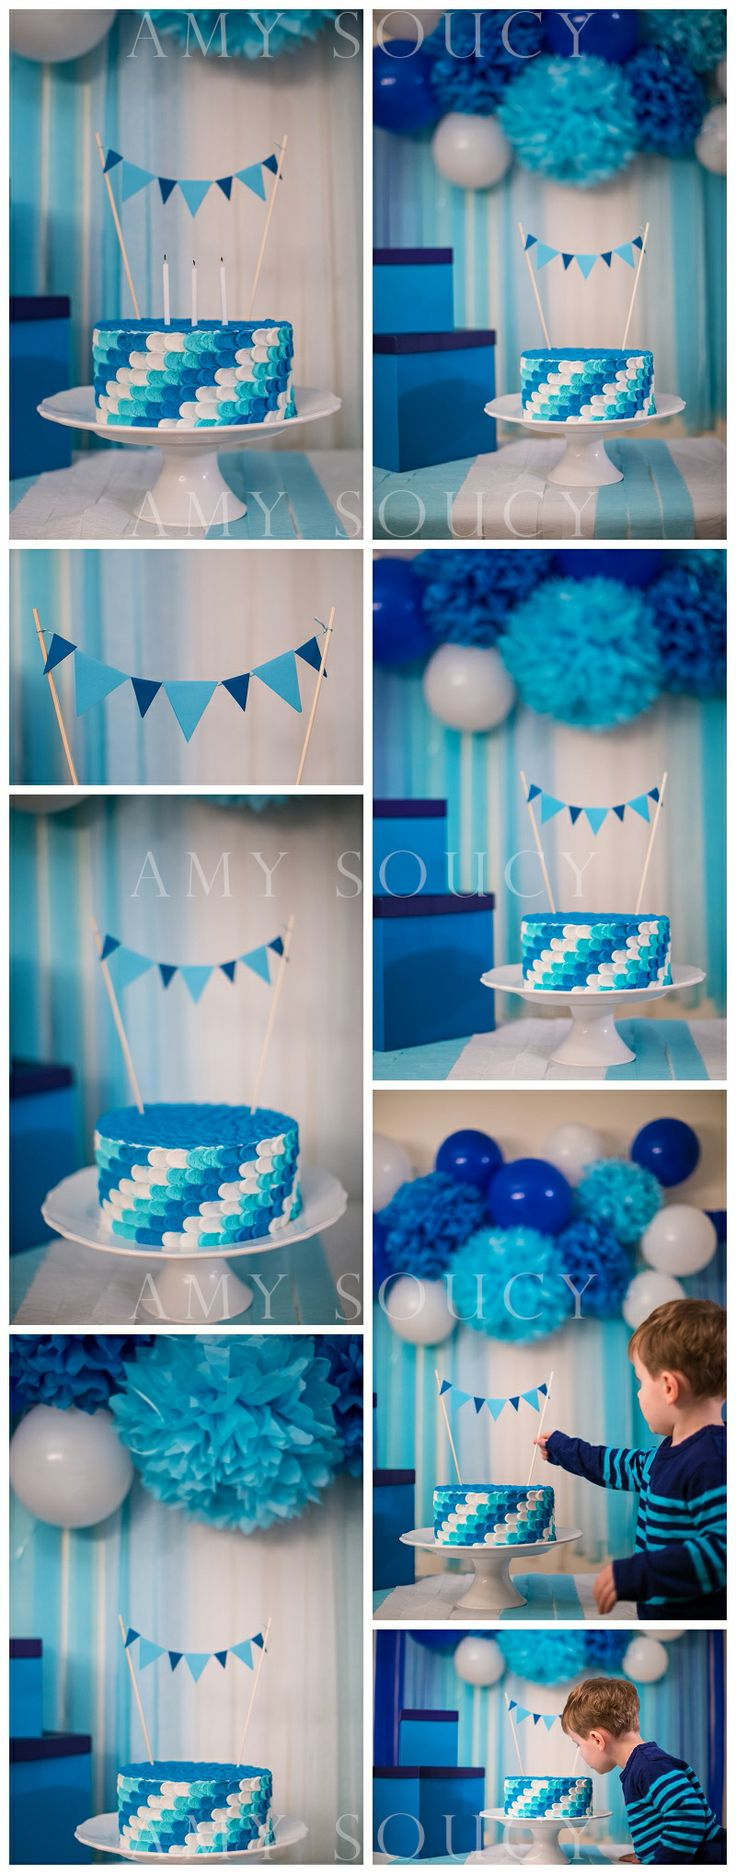 Pin by Michelle Valles on Baby shower Pinterest Birthdays